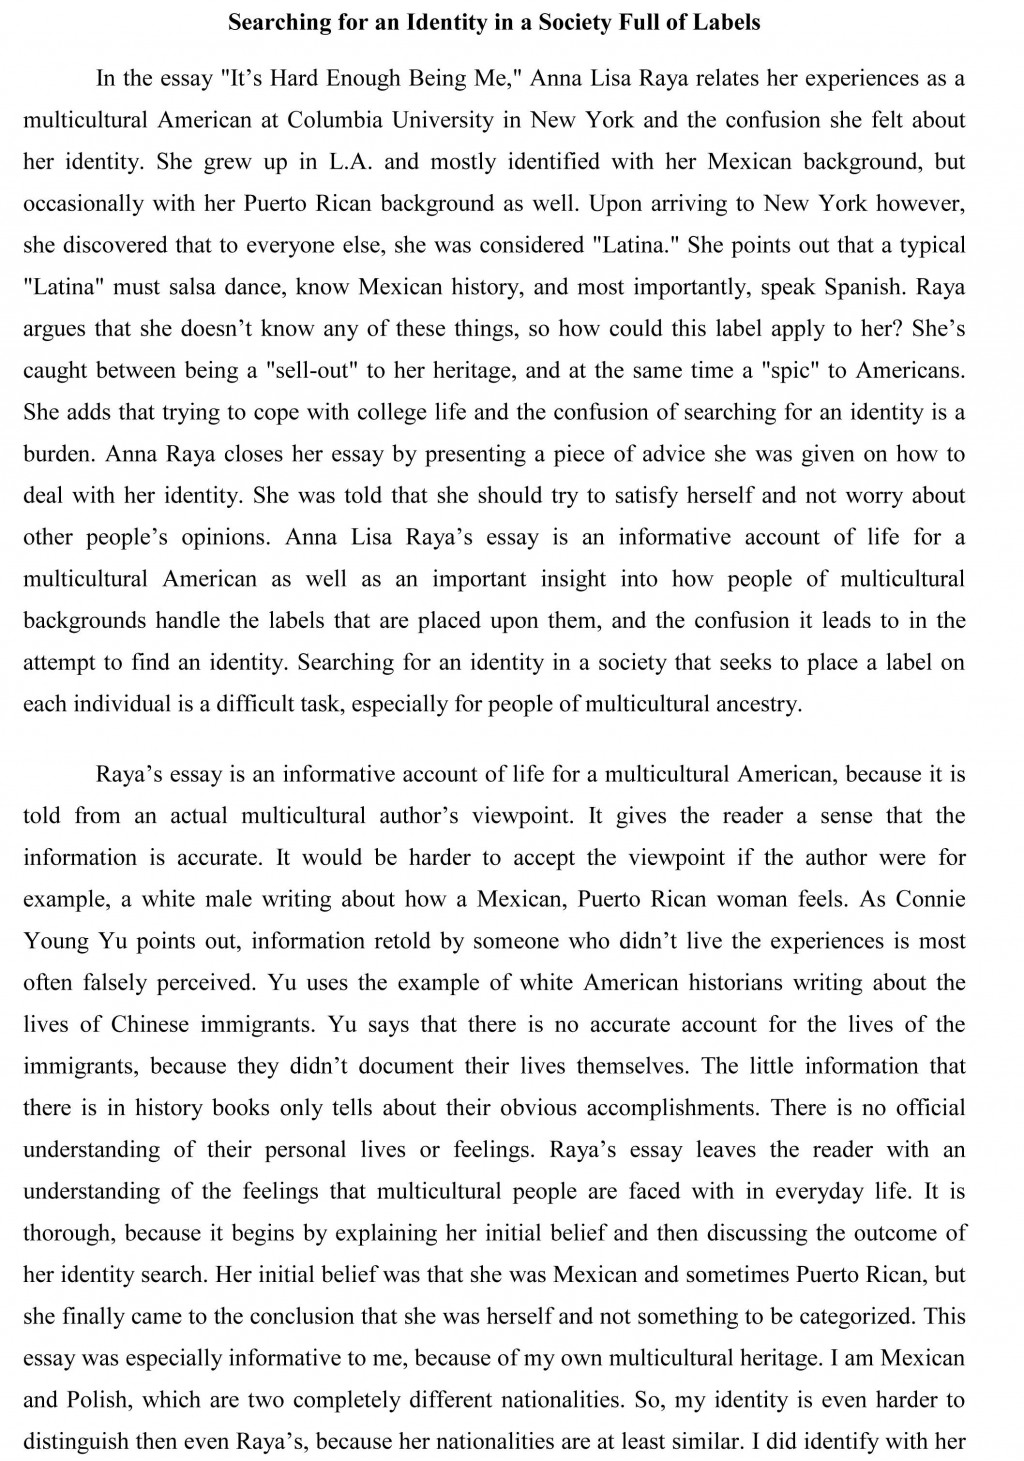 007 Essay Example Immigrants Problems Synthesis Excellent Face Immigrant Issues Large